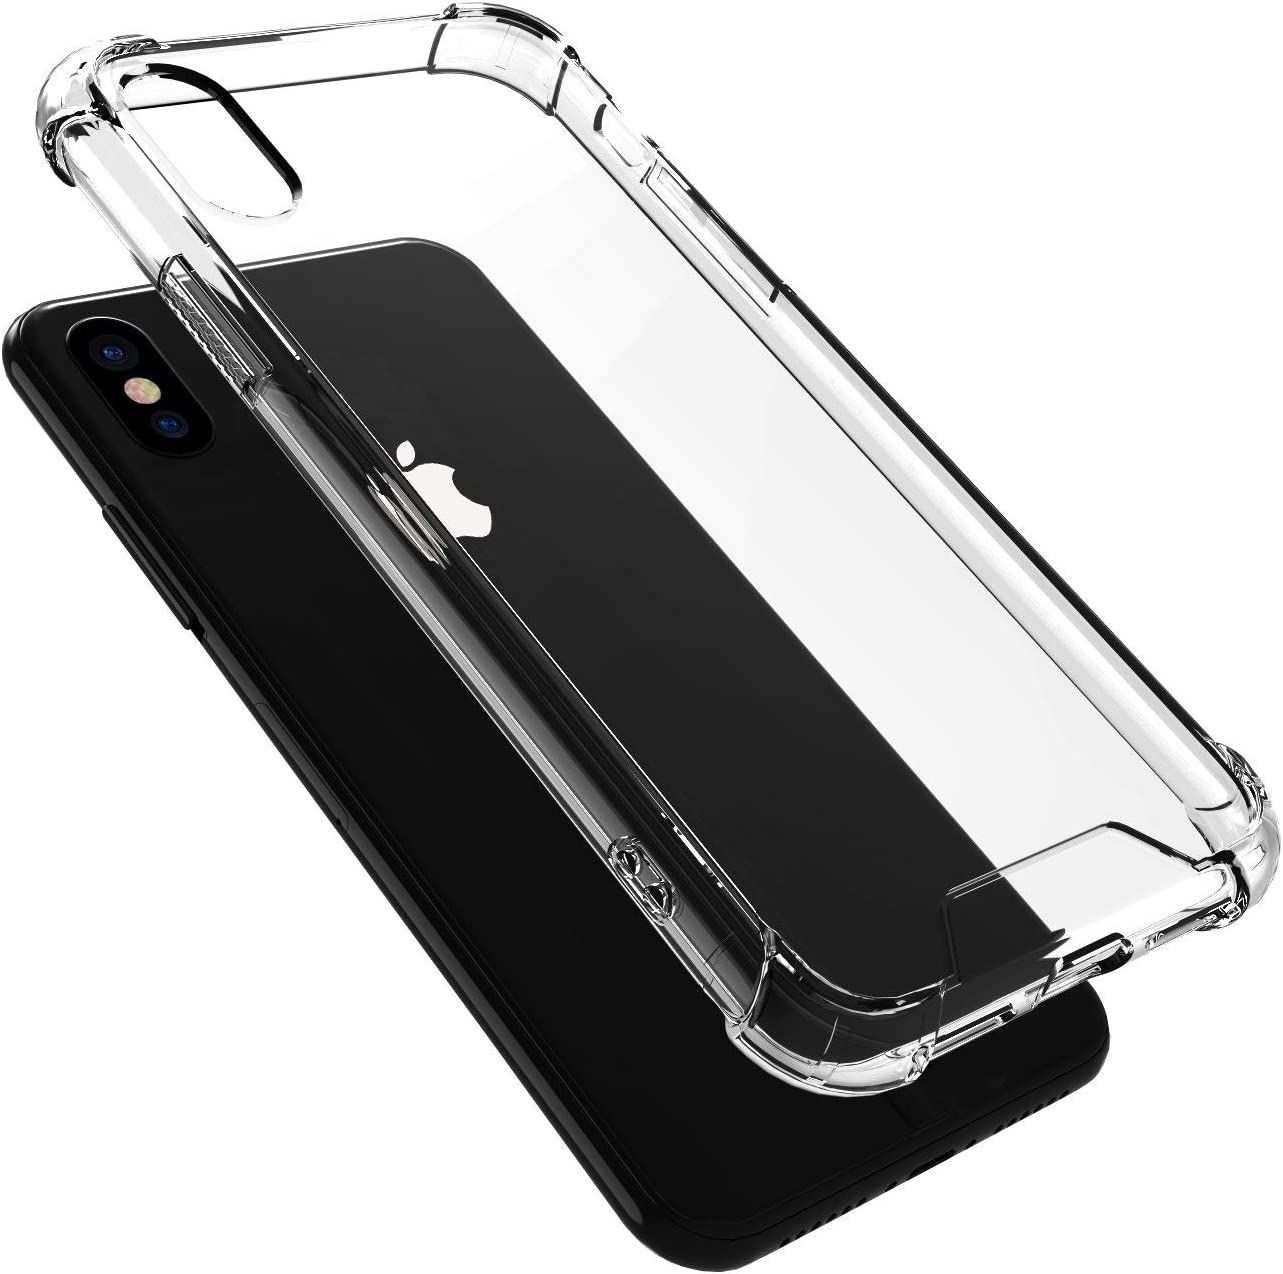 iATO Crystal Clear Case for iPhone X - Transparent Protective Shock Absorption Cover - Soft Flexible Slim TPU & Hard PC Back Snap on Thin Bumper for iPhone X / 10 (2017) | Supports Wireless Charging